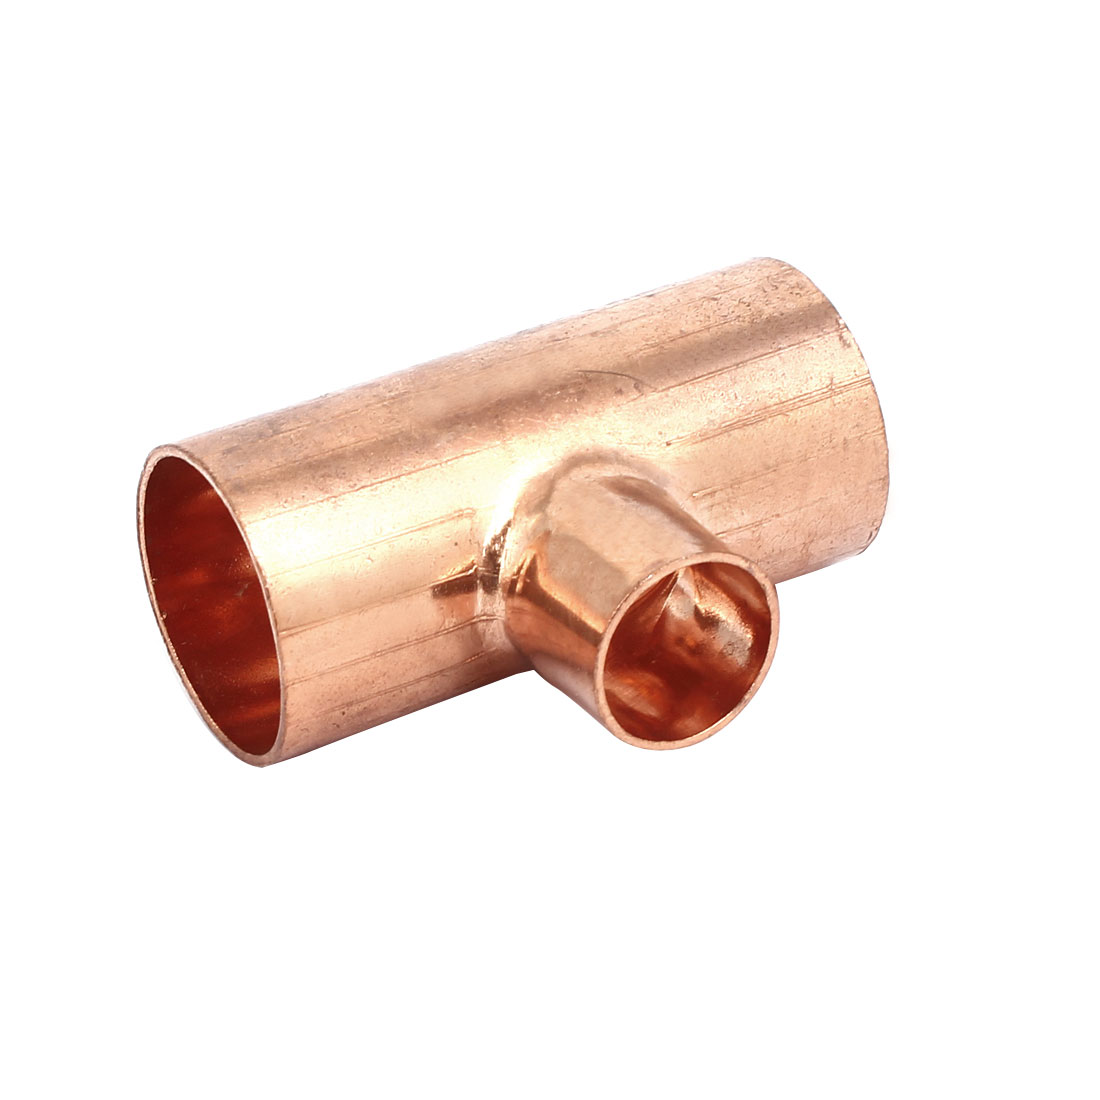 32mmx19mm Copper Tee Reducing Fitting Air Conditioner Plumbing Accessory